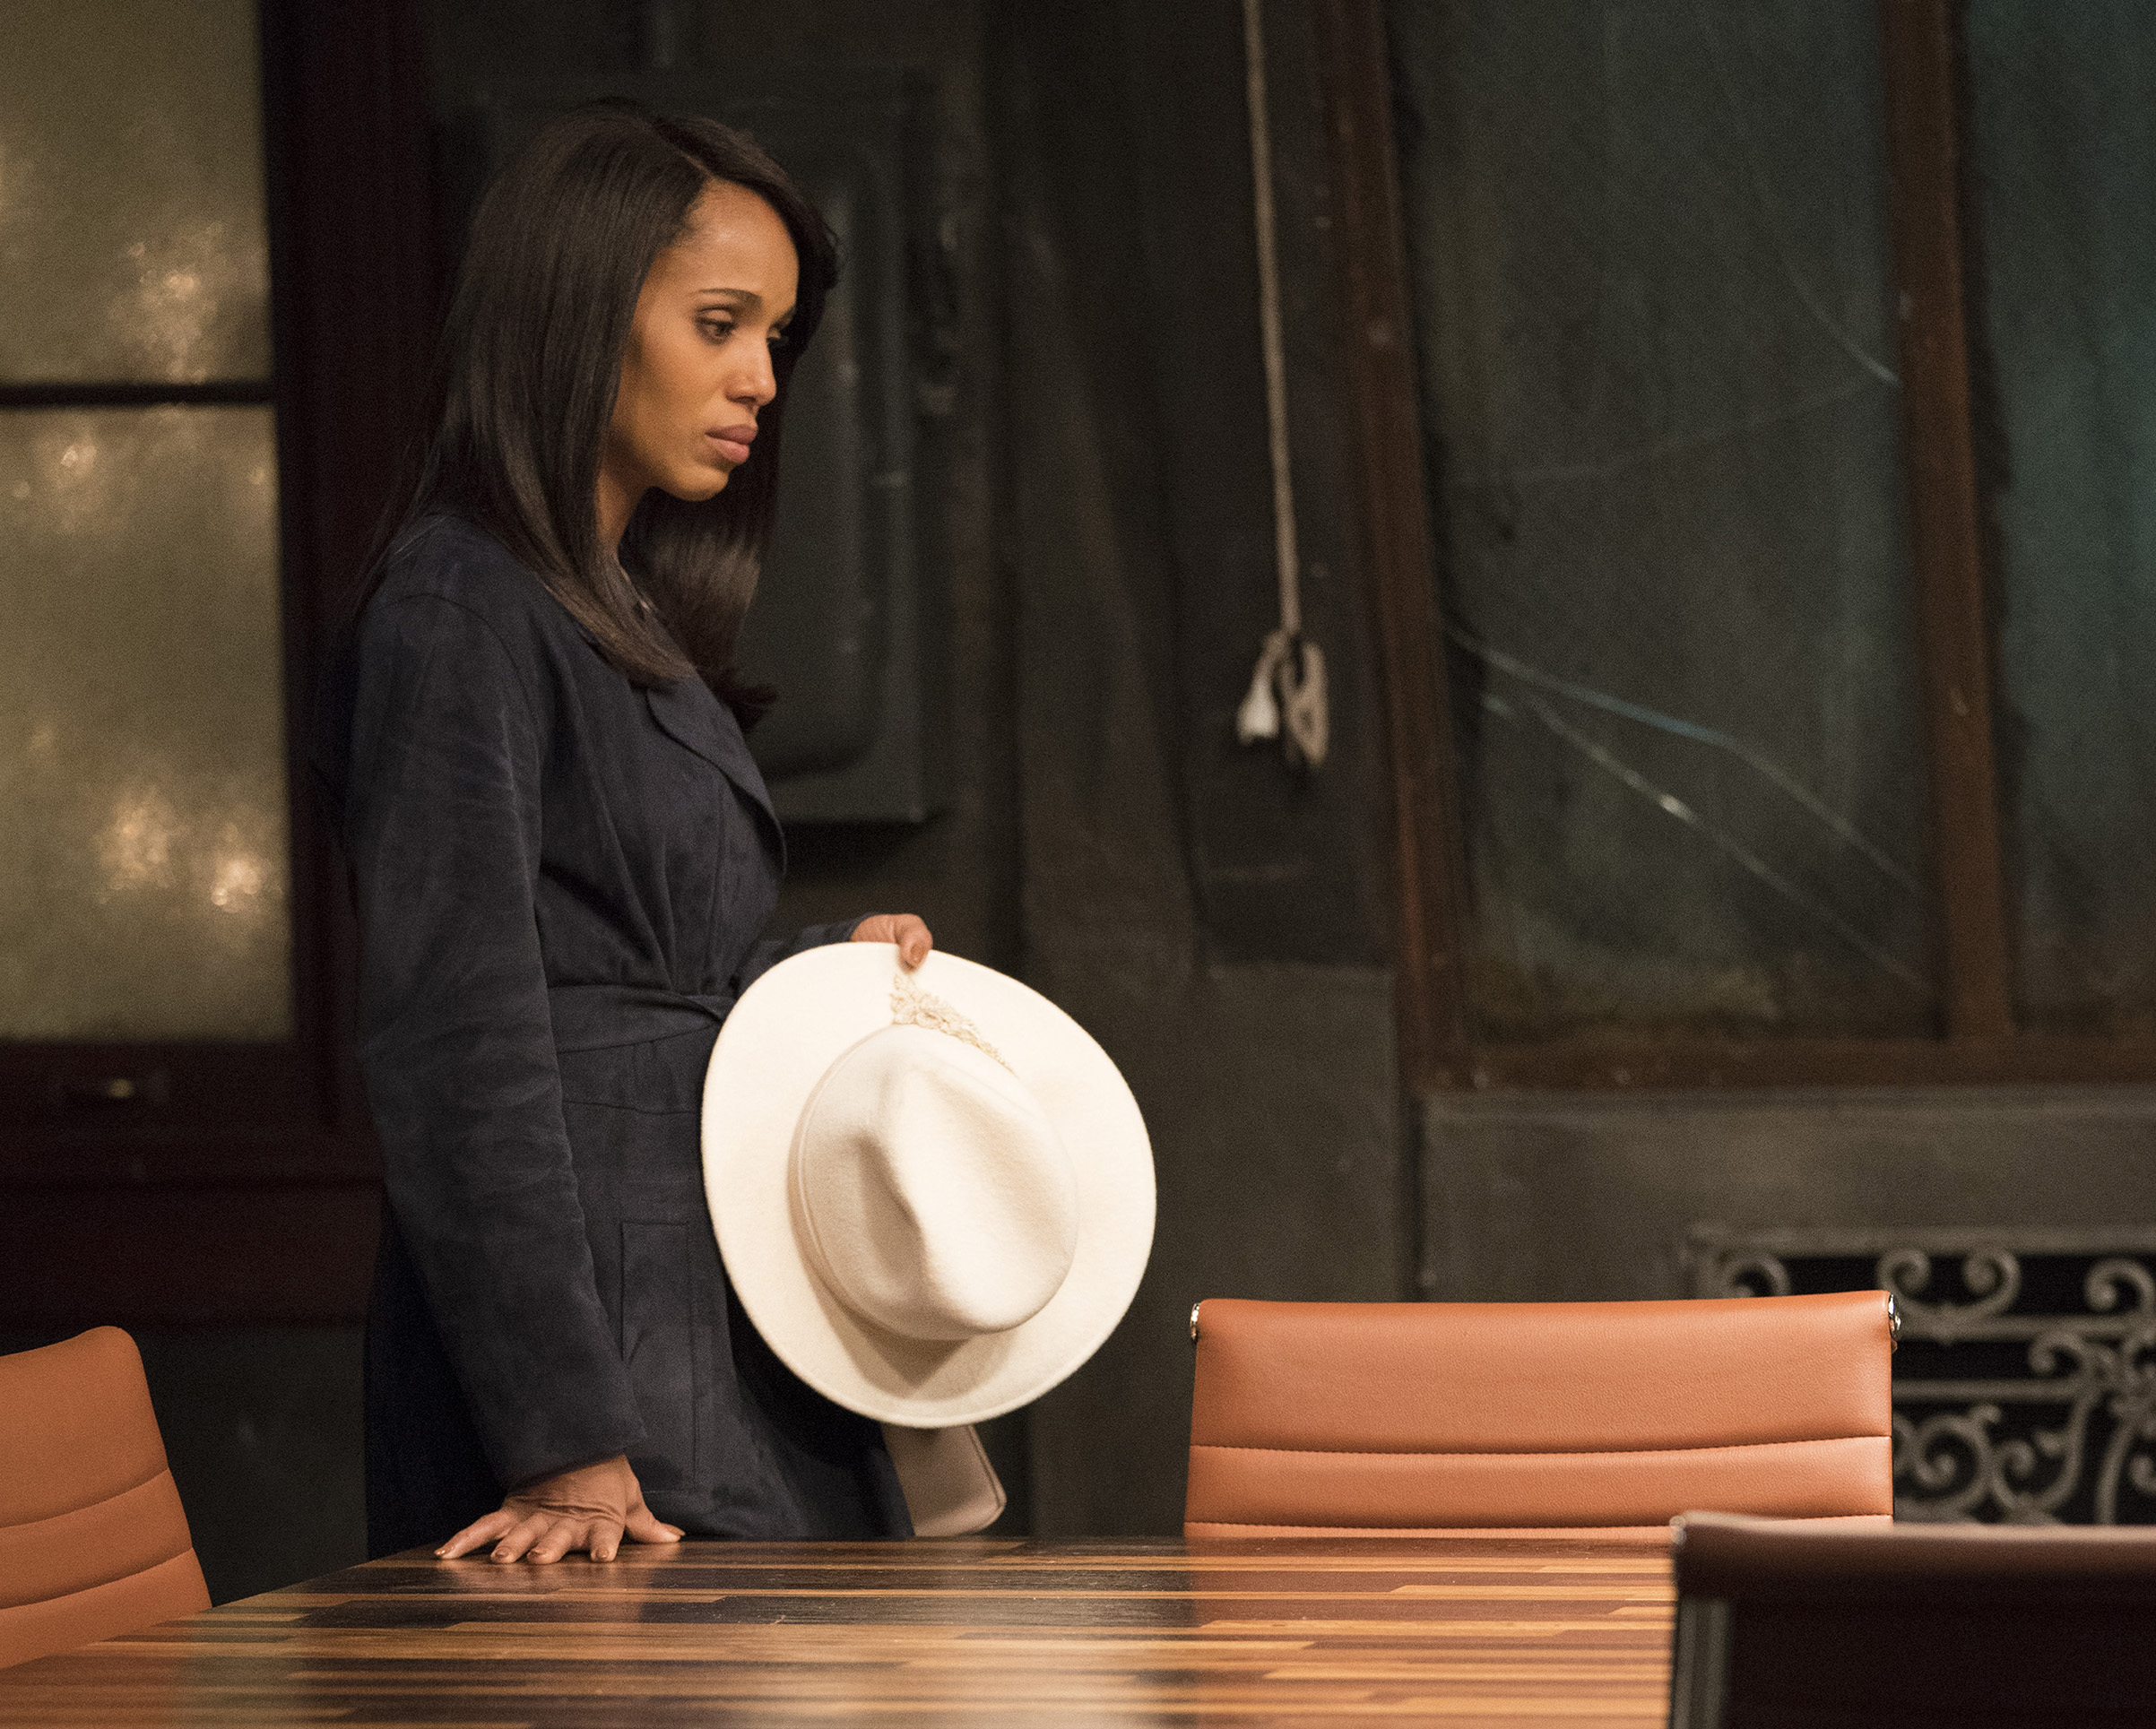 Kerry Washington as Olivia Pope in Scandal